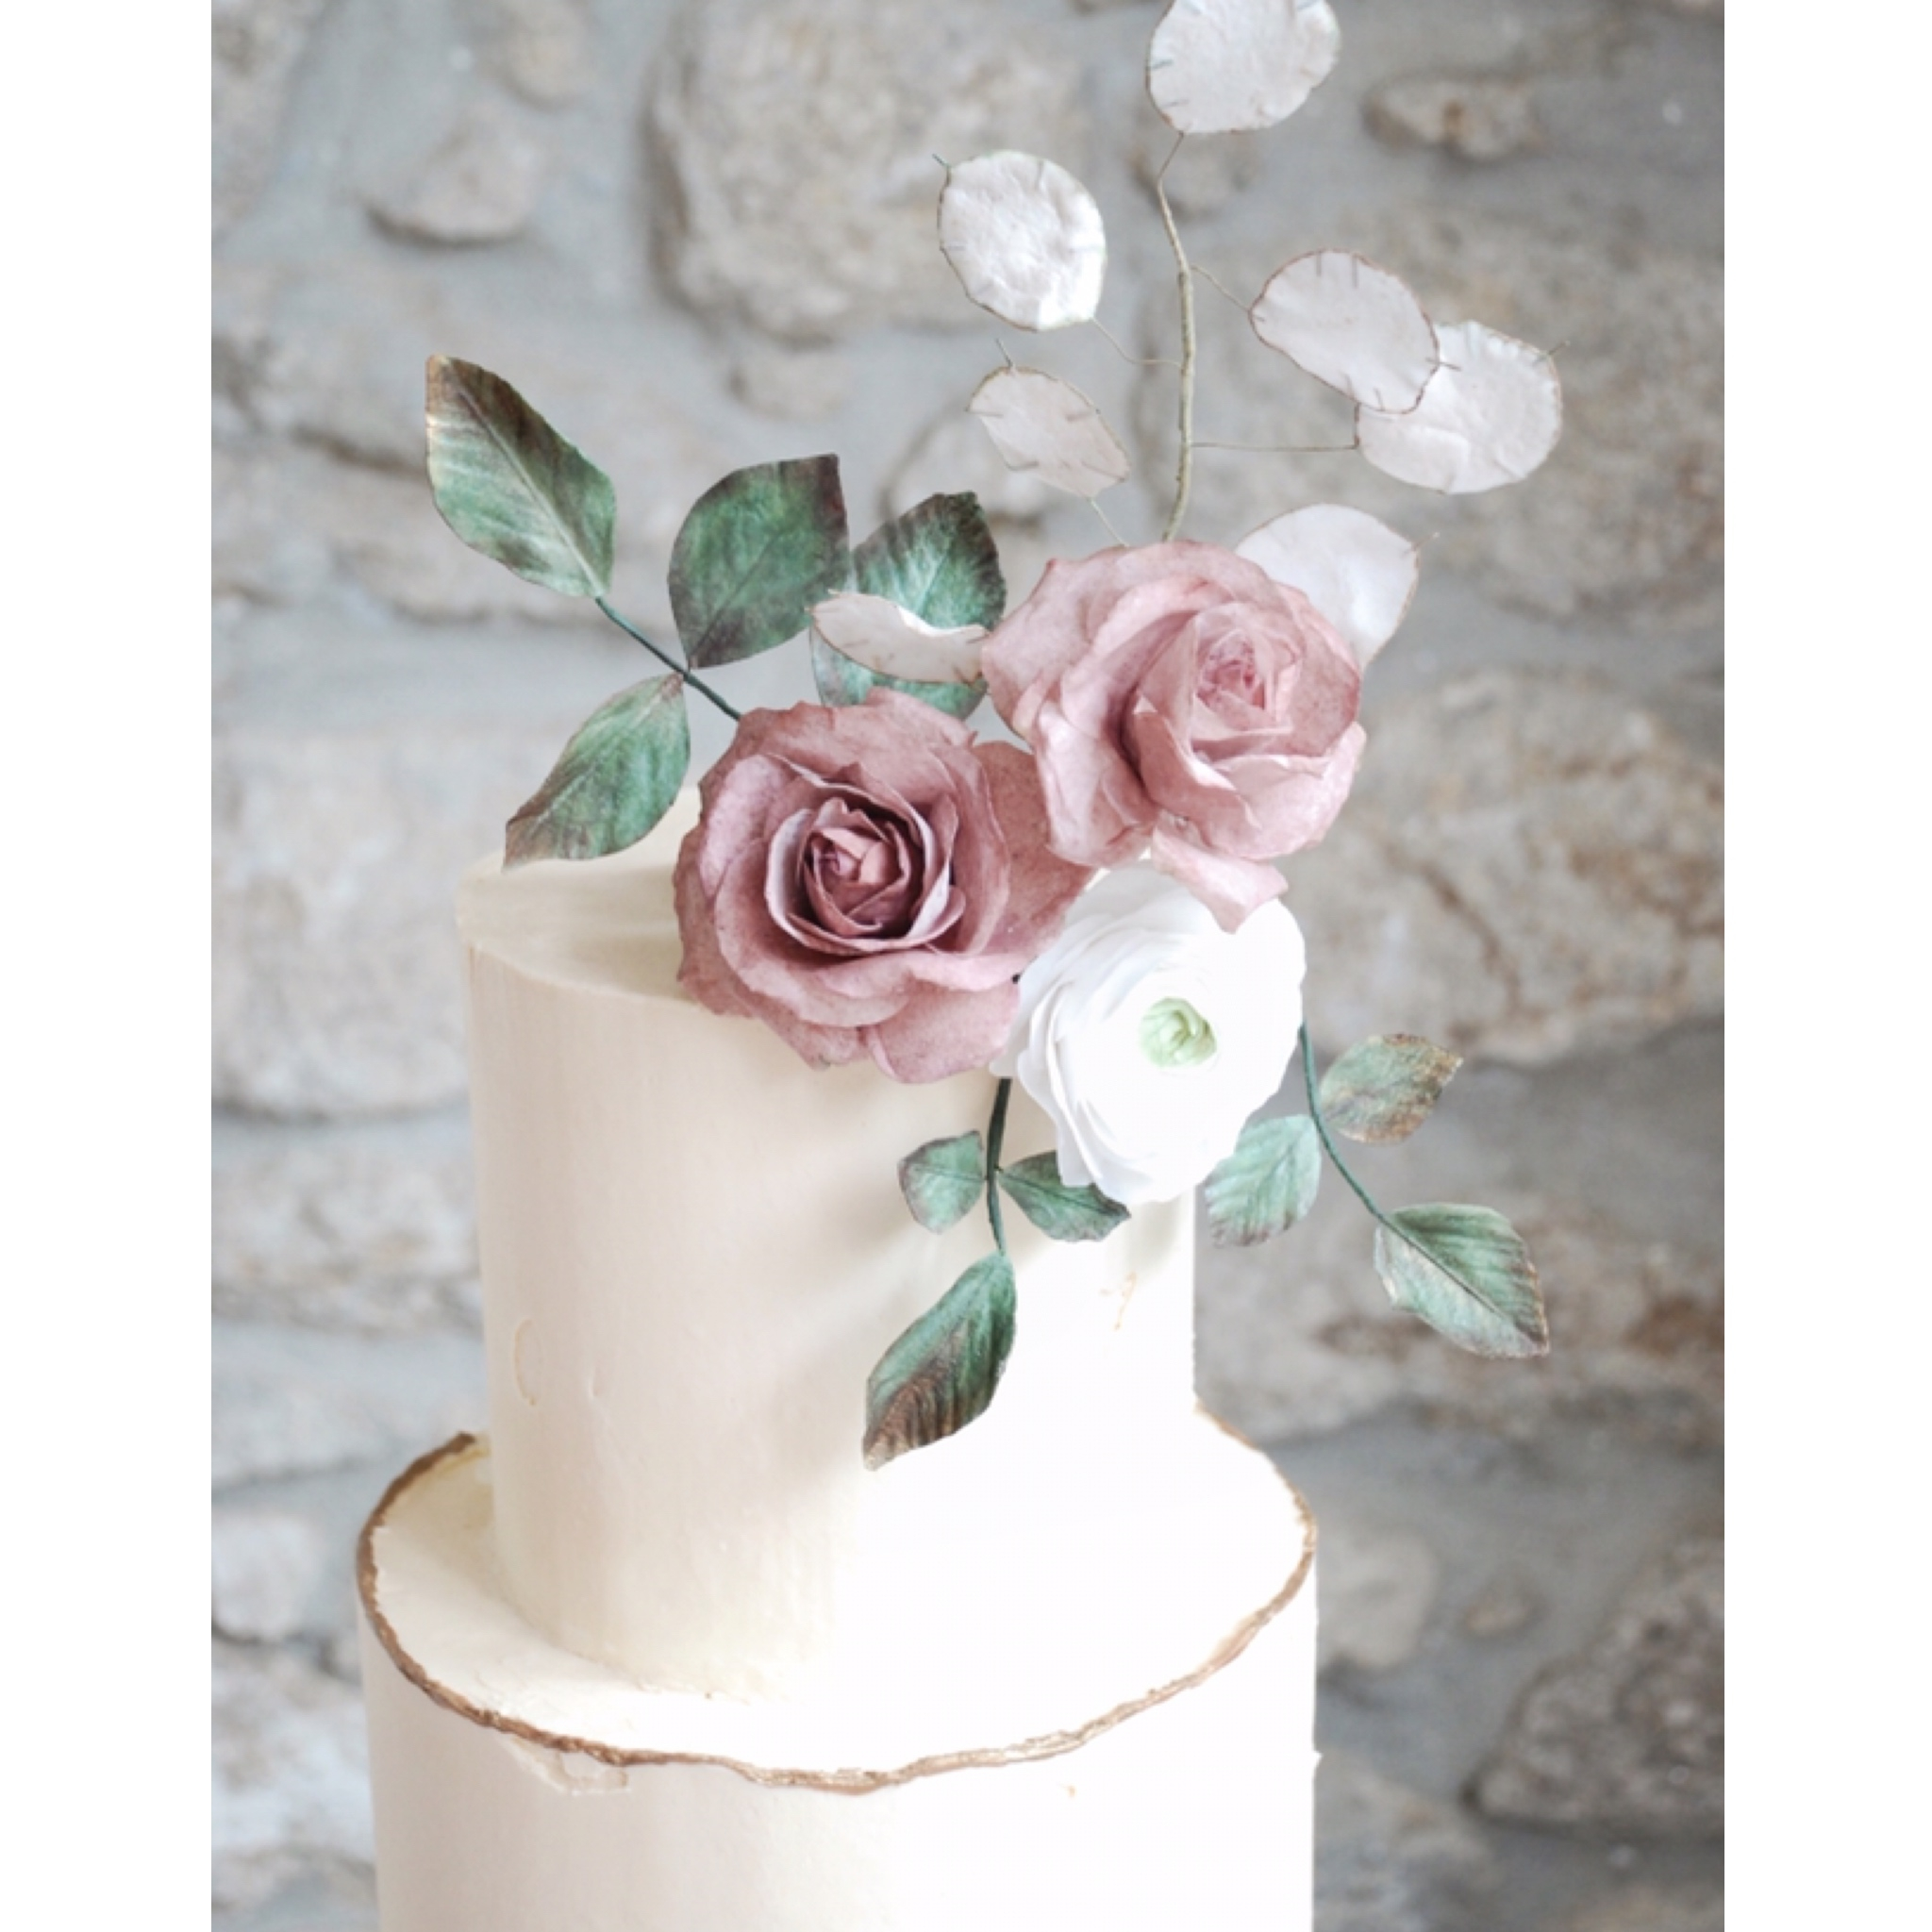 Elegant ivory wedding cake wafer paper flowers buttercream icing.